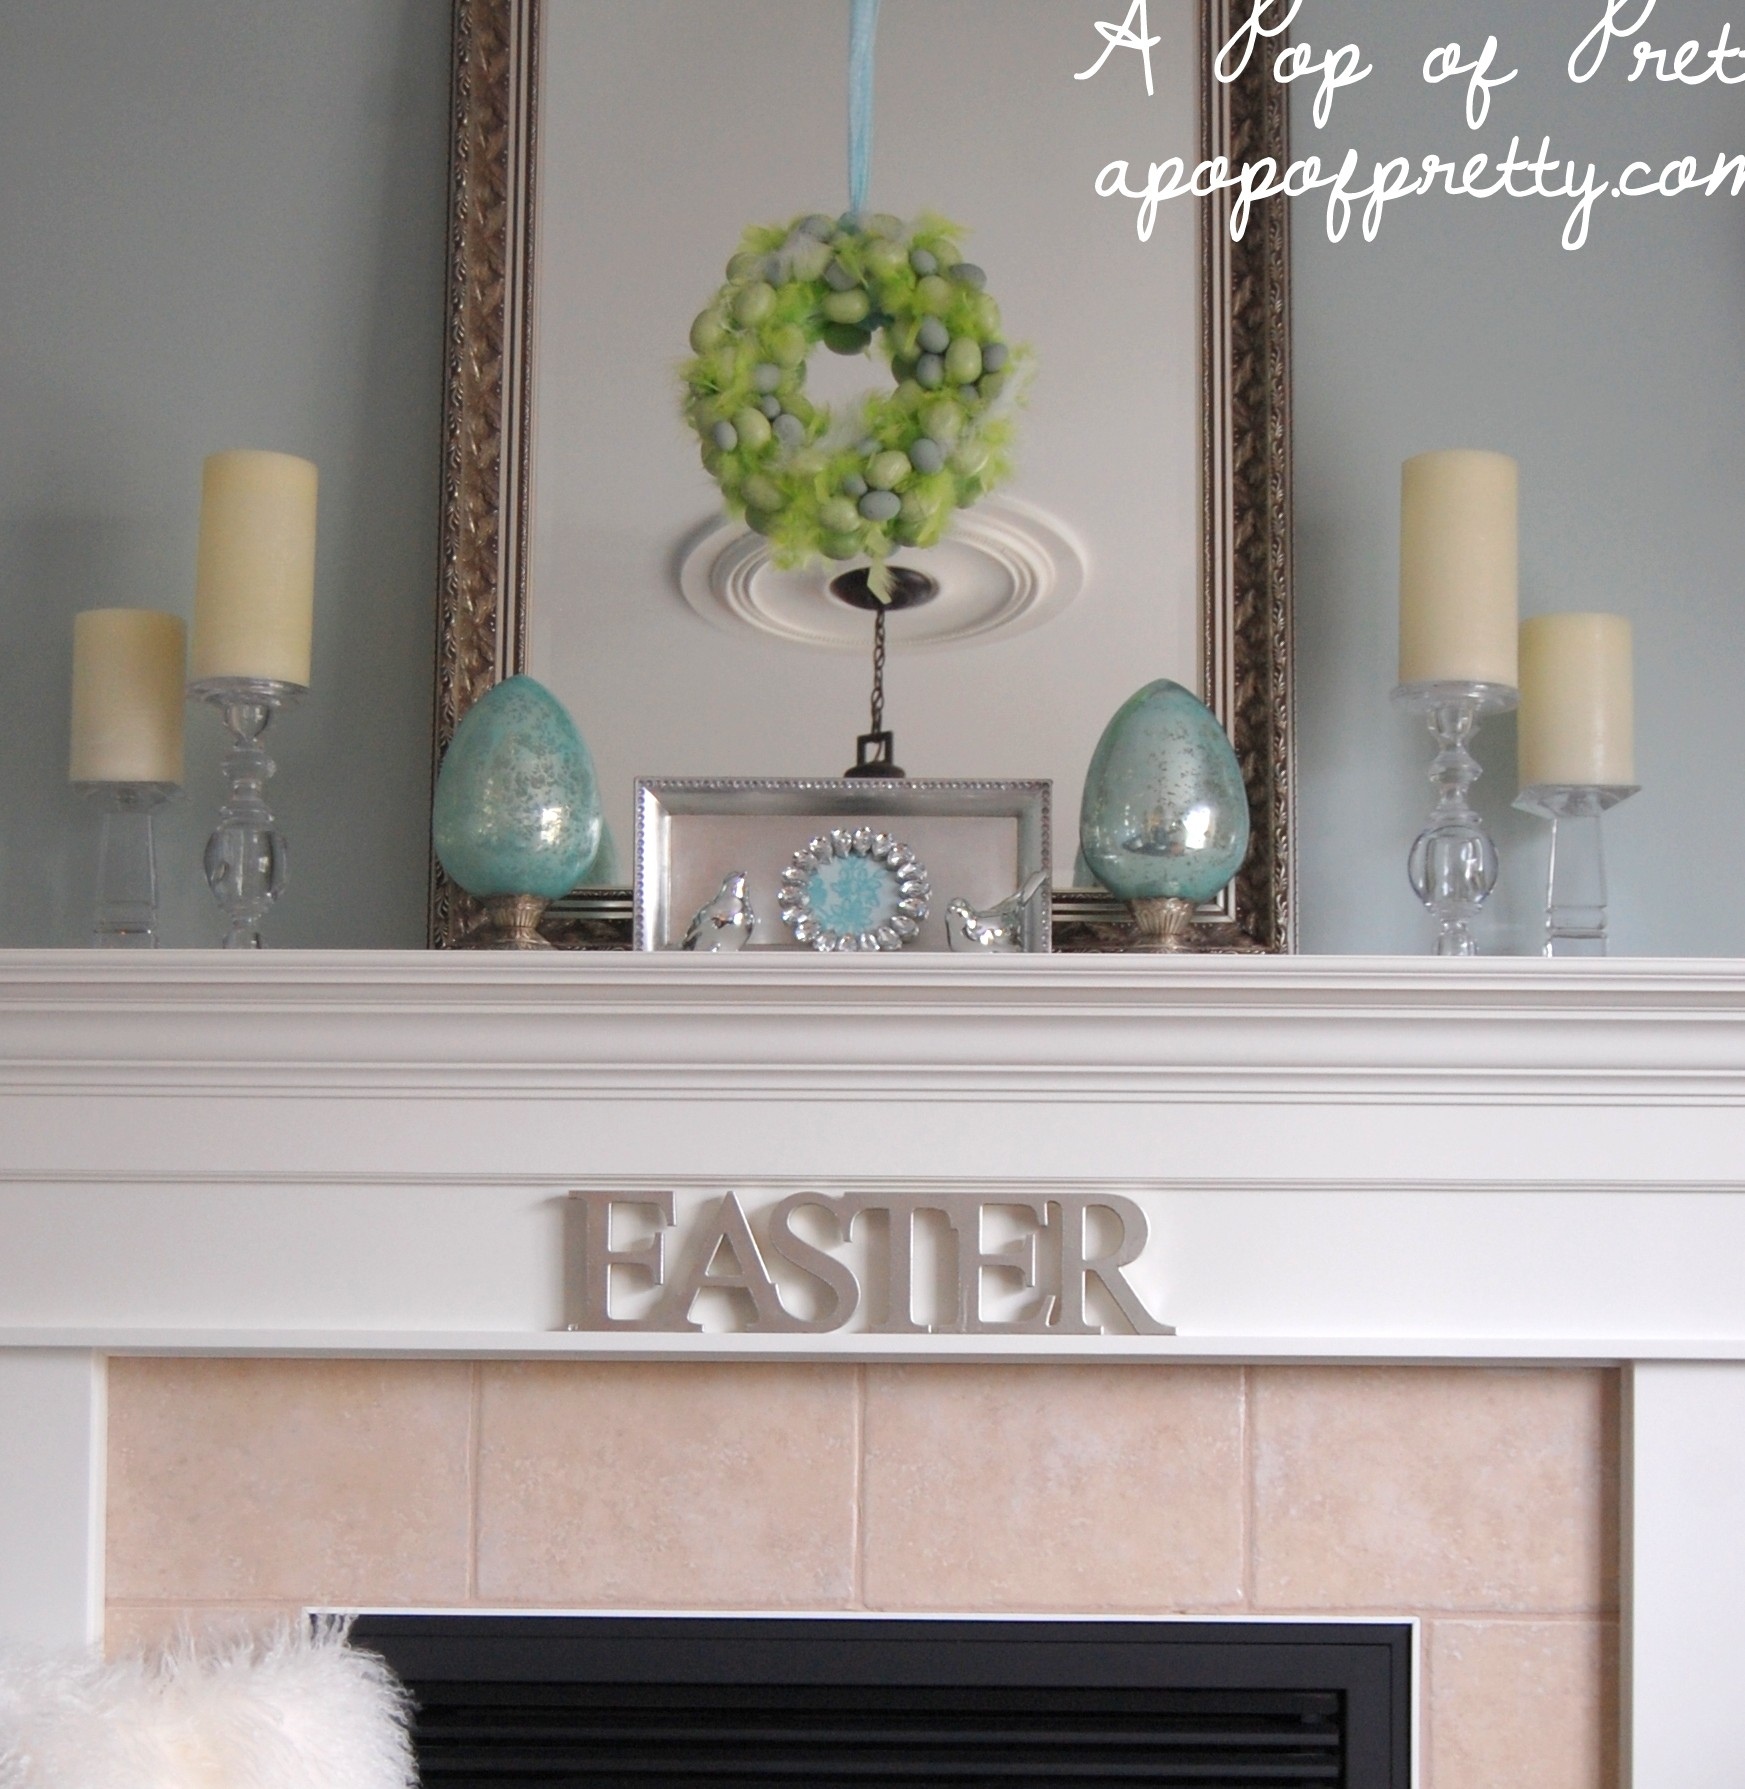 Easter Decorating Ideas: Decorate A Simple Easter Mantel